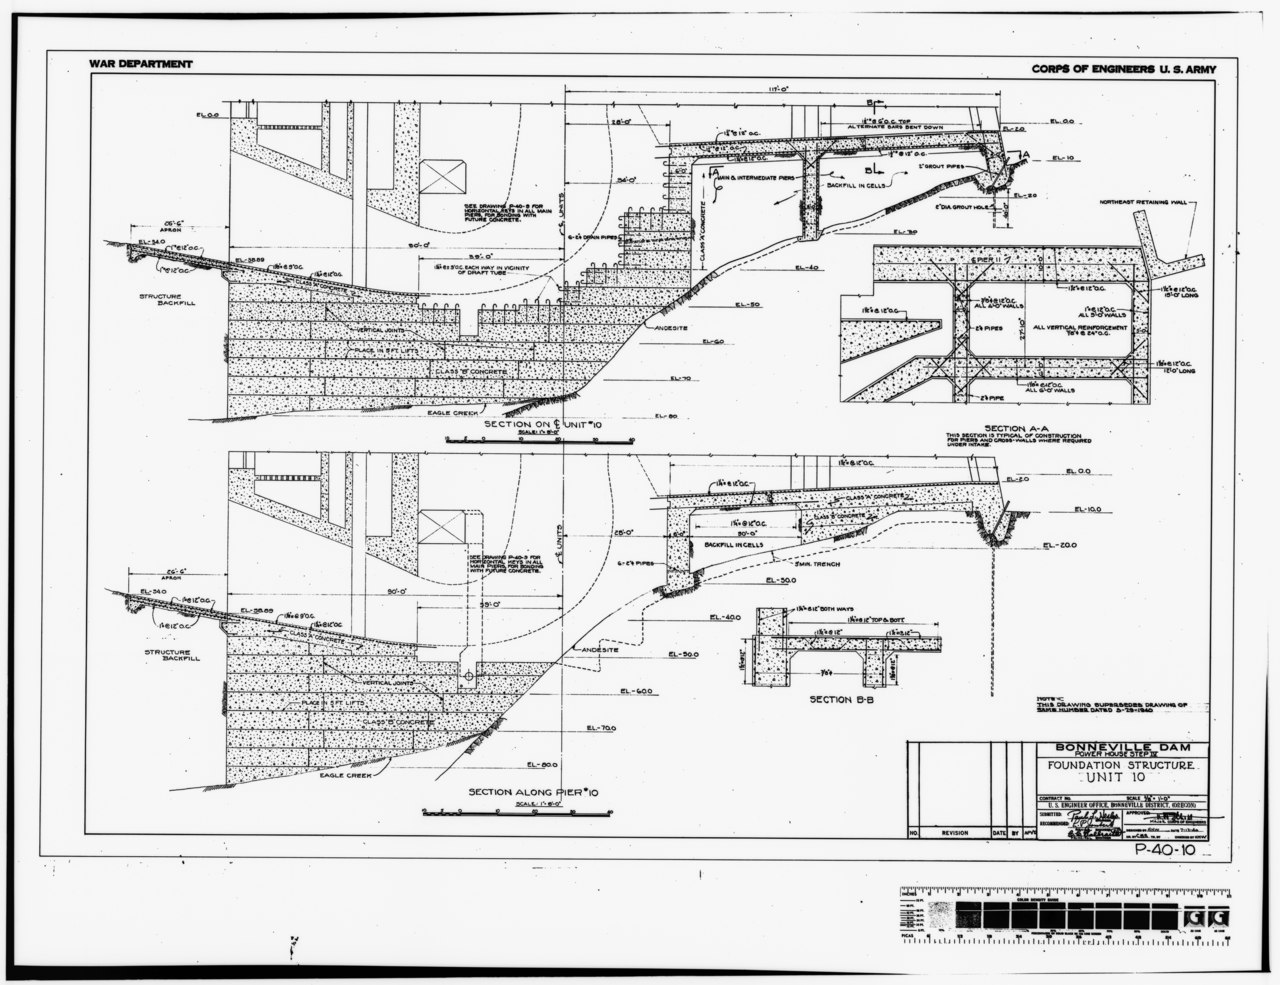 File Photocopy Of Original Construction Drawing Dated 12